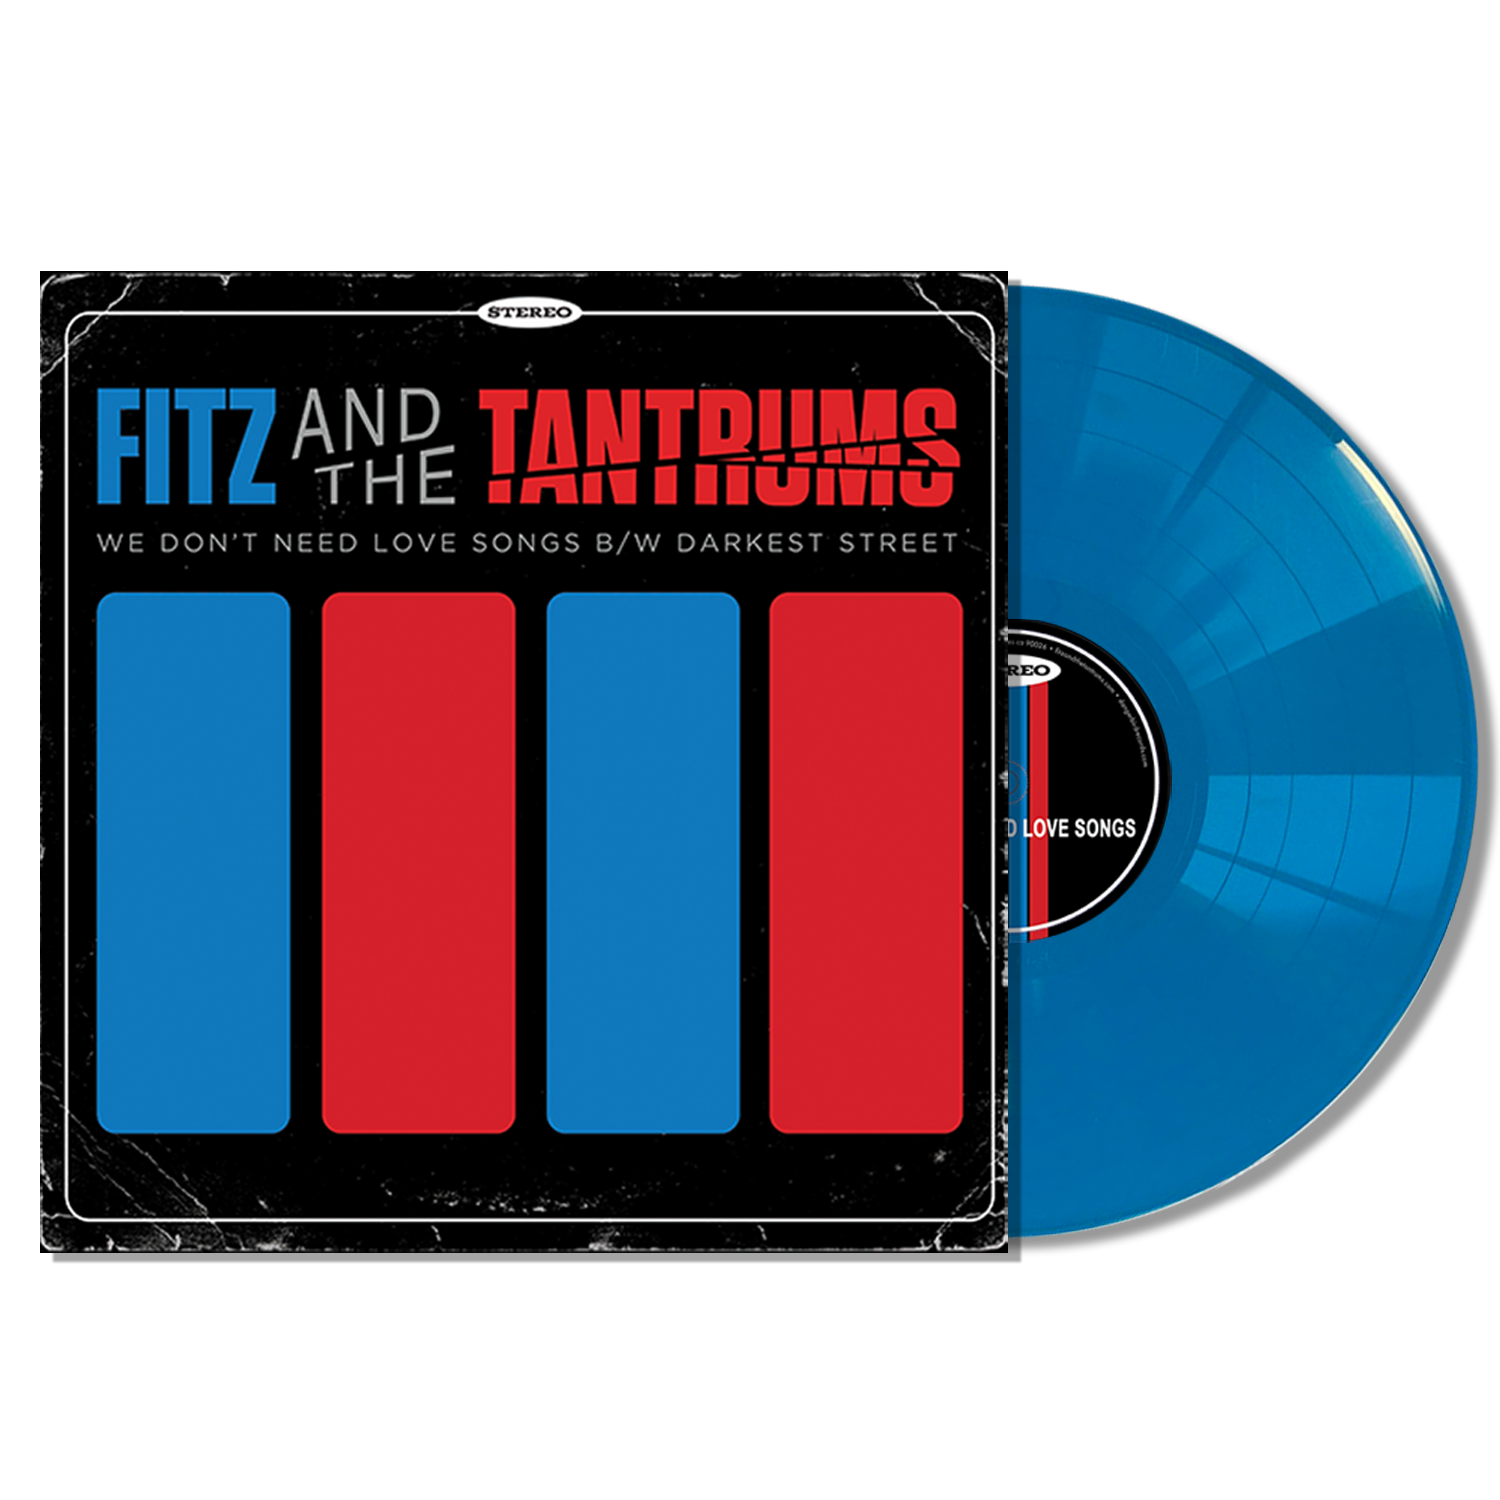 Fitz and The Tantrums - We Don't Need Love Songs b/w Darkest Street - Opaque Blue 12